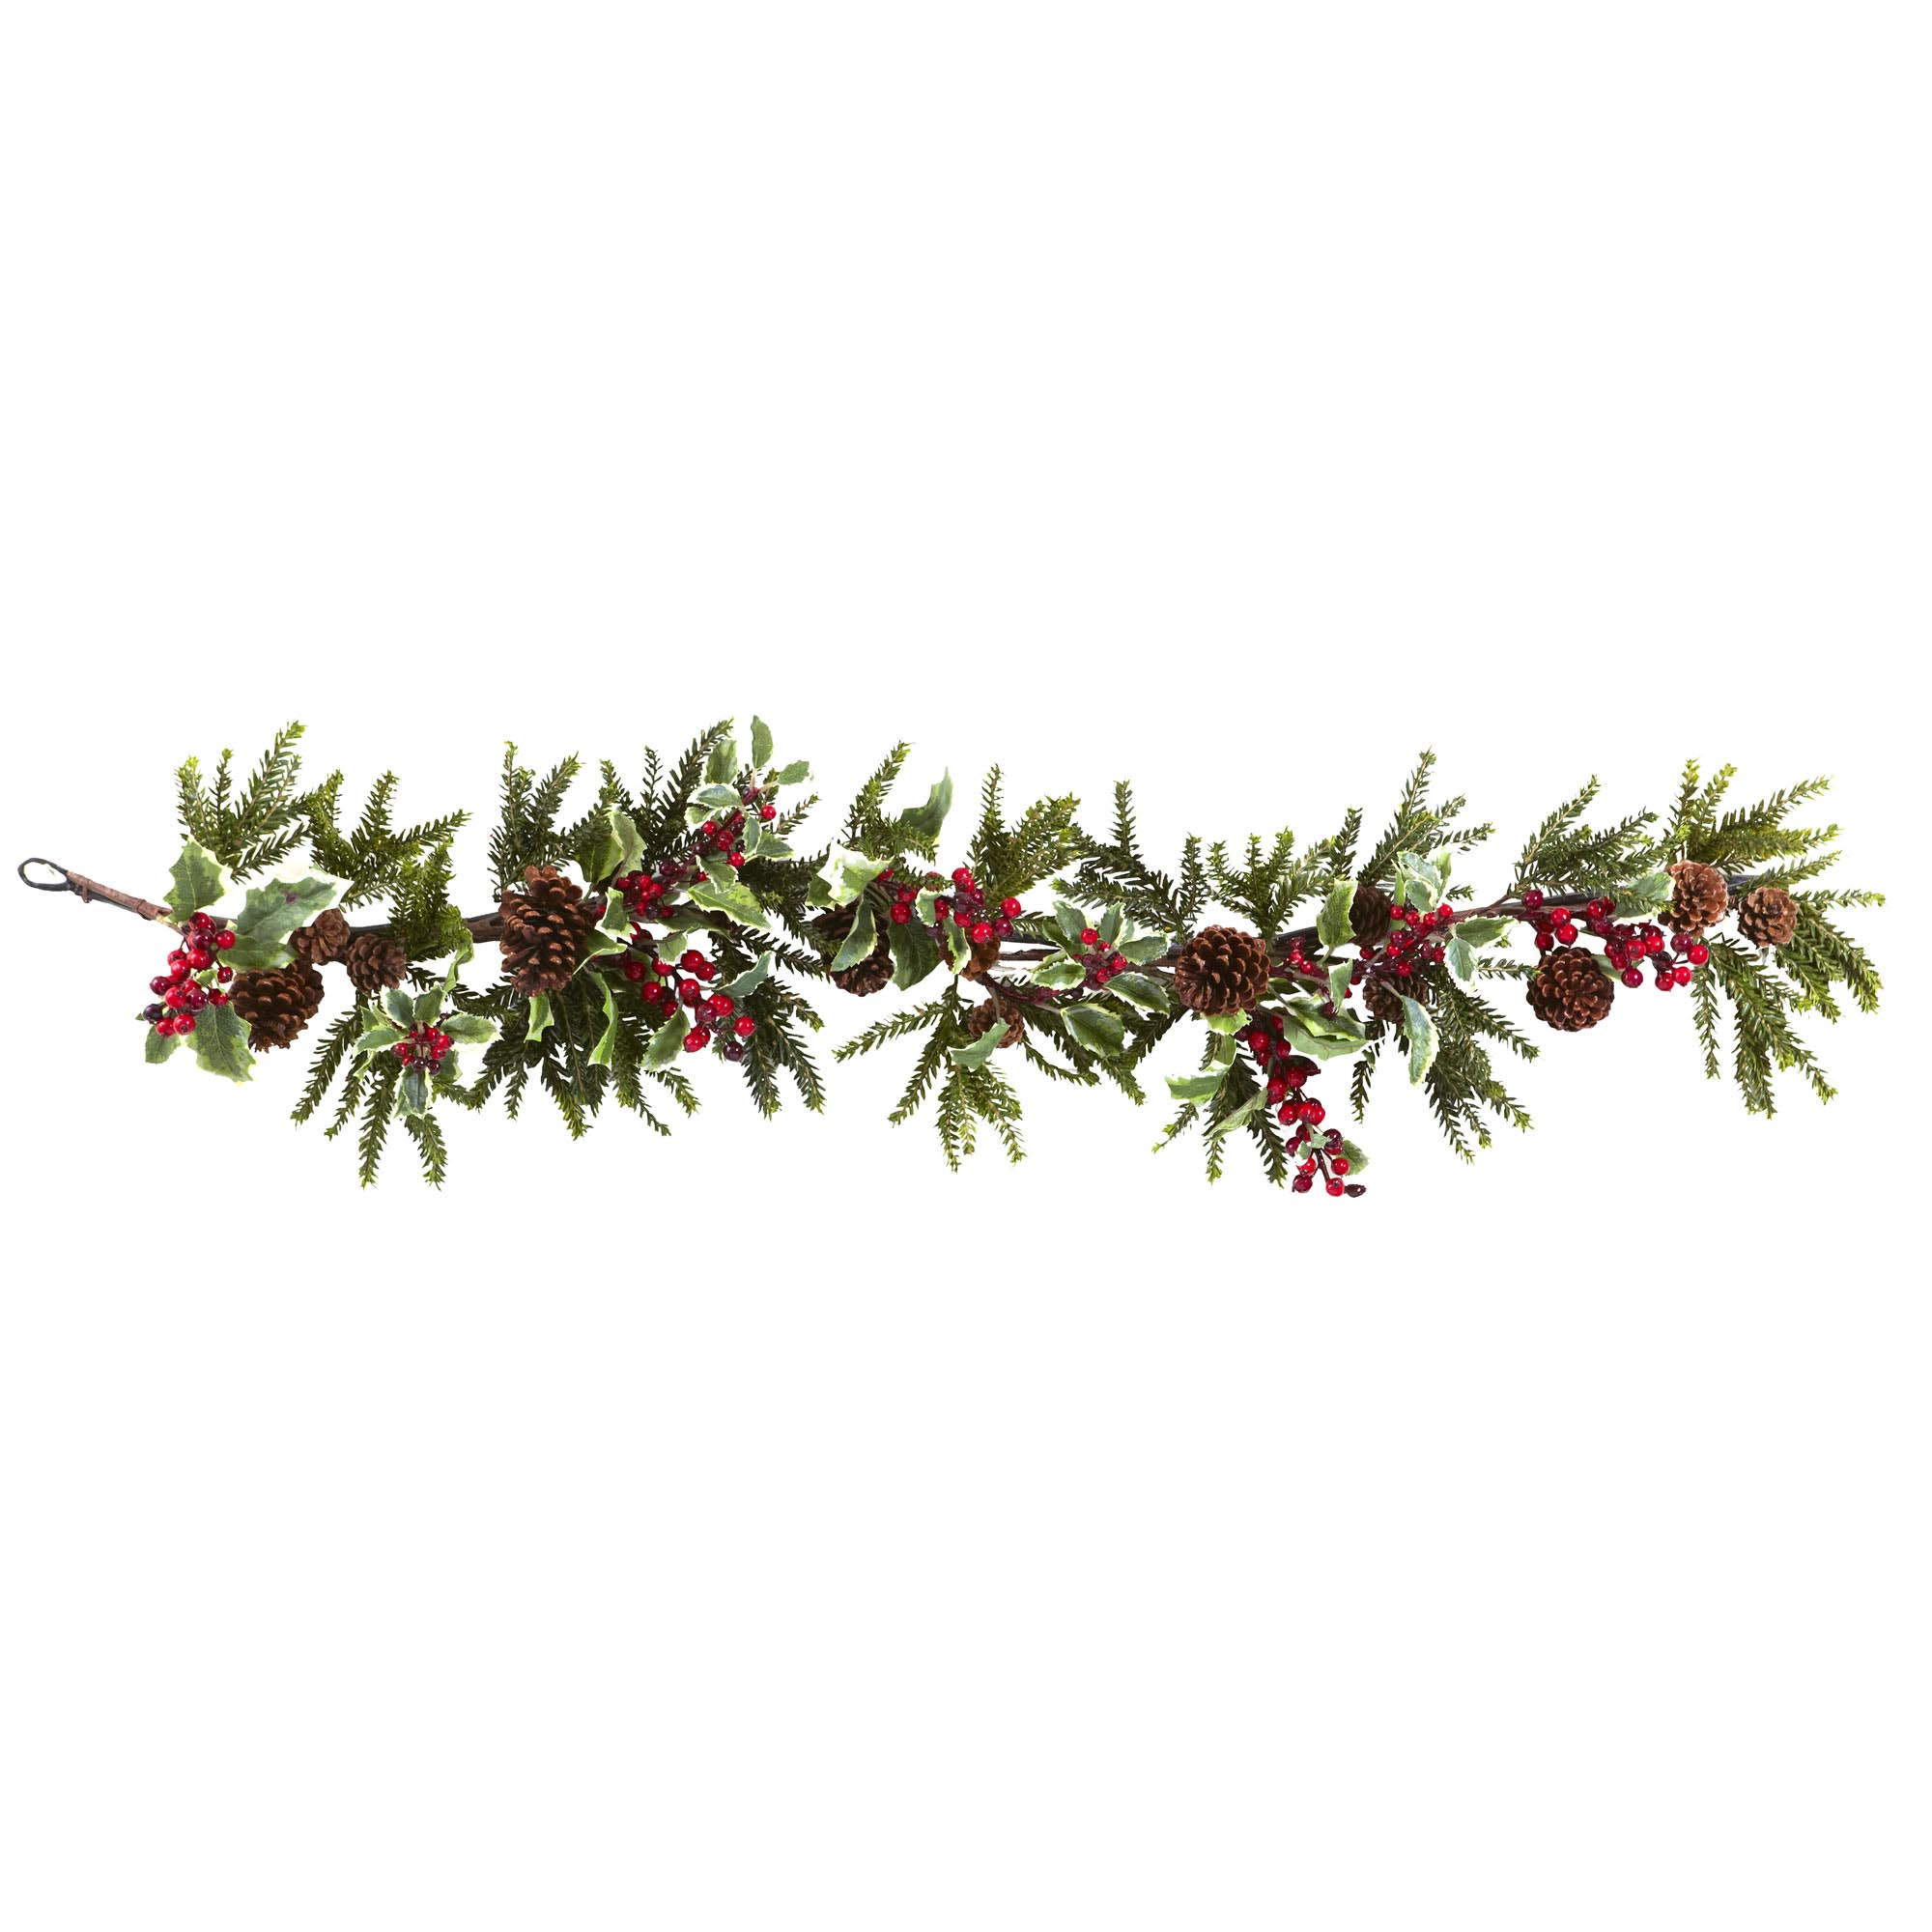 Wreath clipart evergreen garland Garland Holly Cliparts free Cliparts